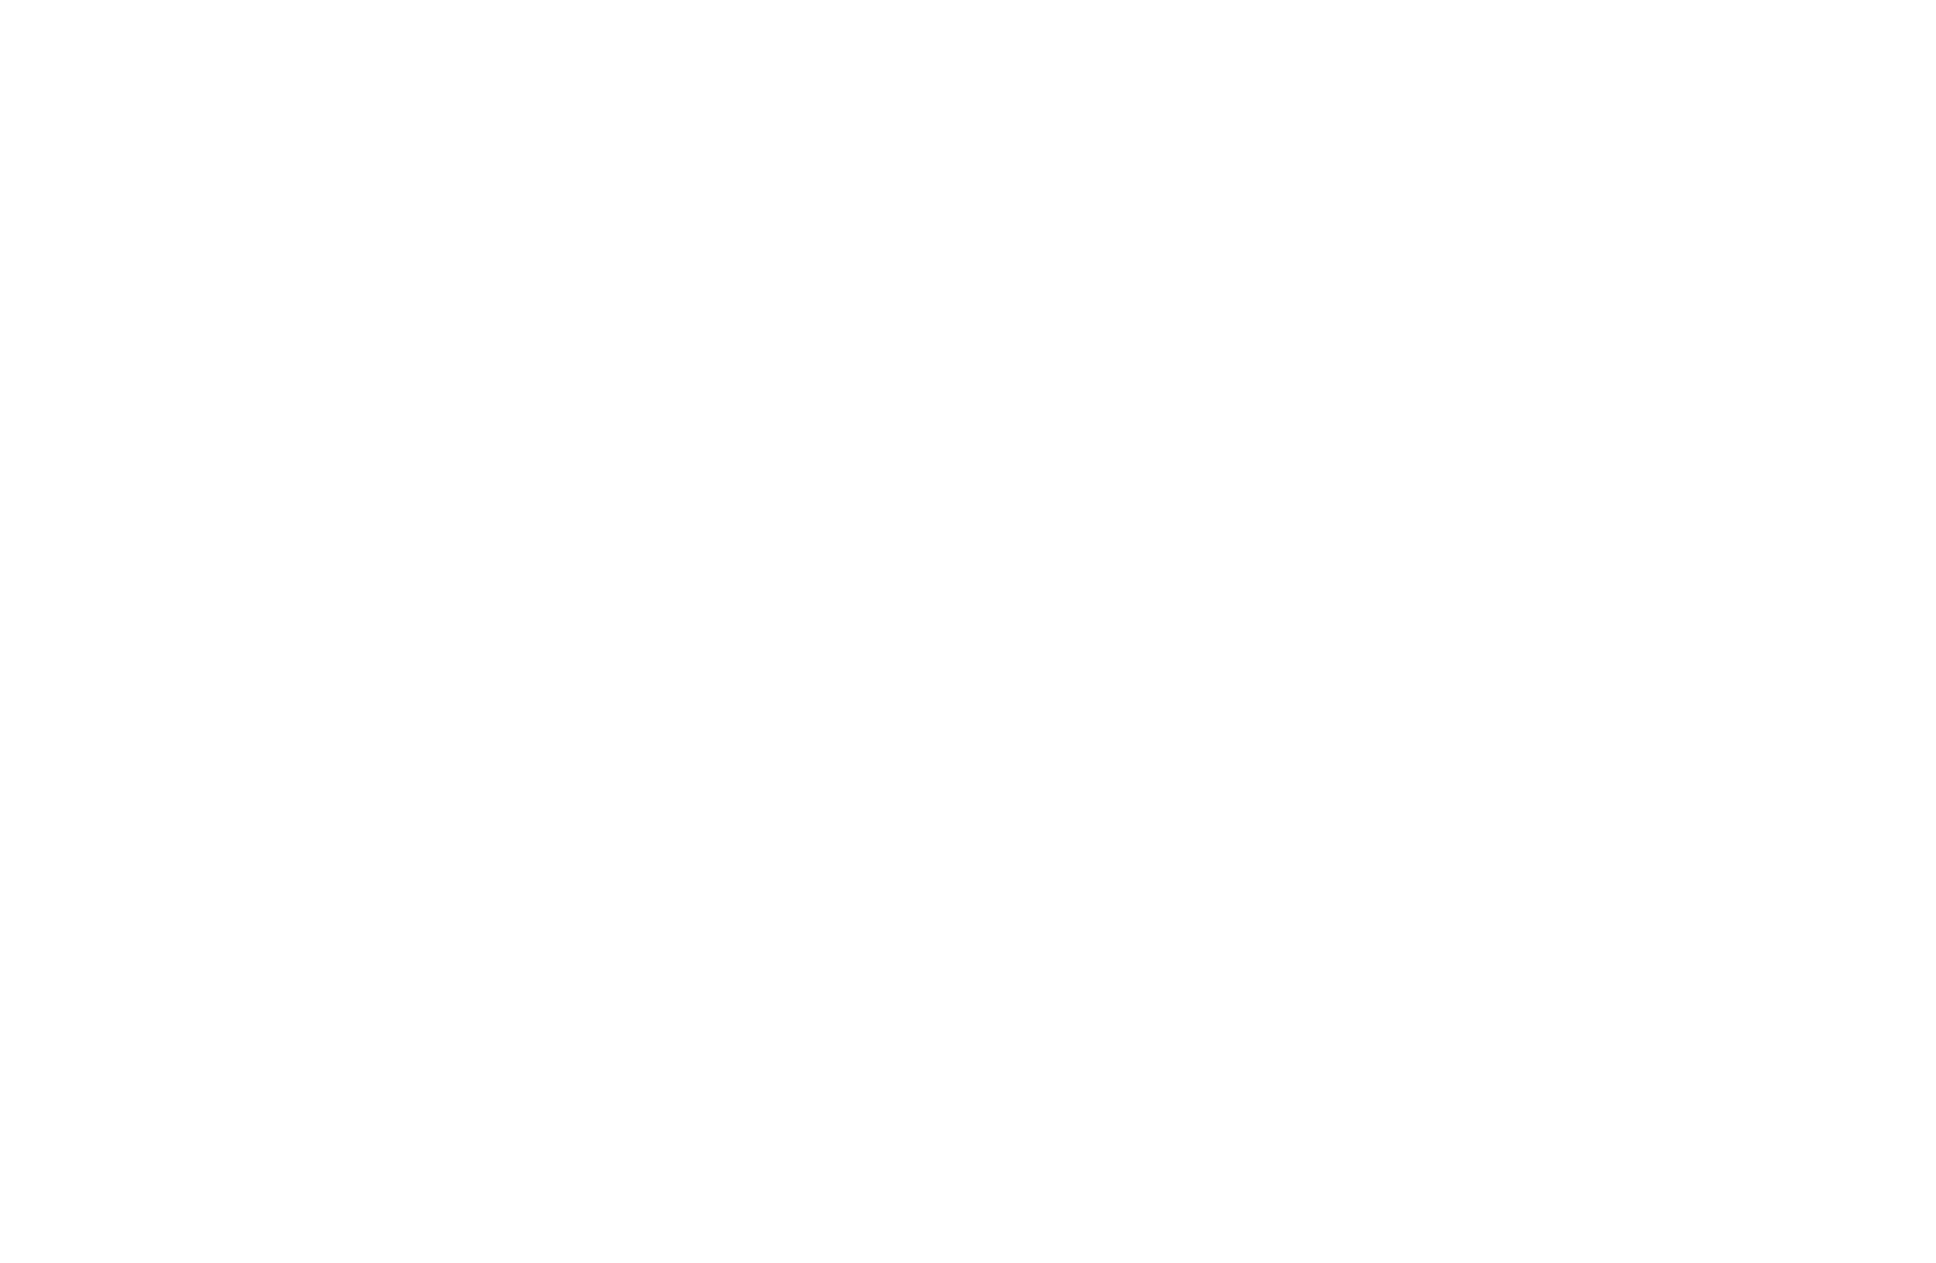 Best Music Video Summer 2018